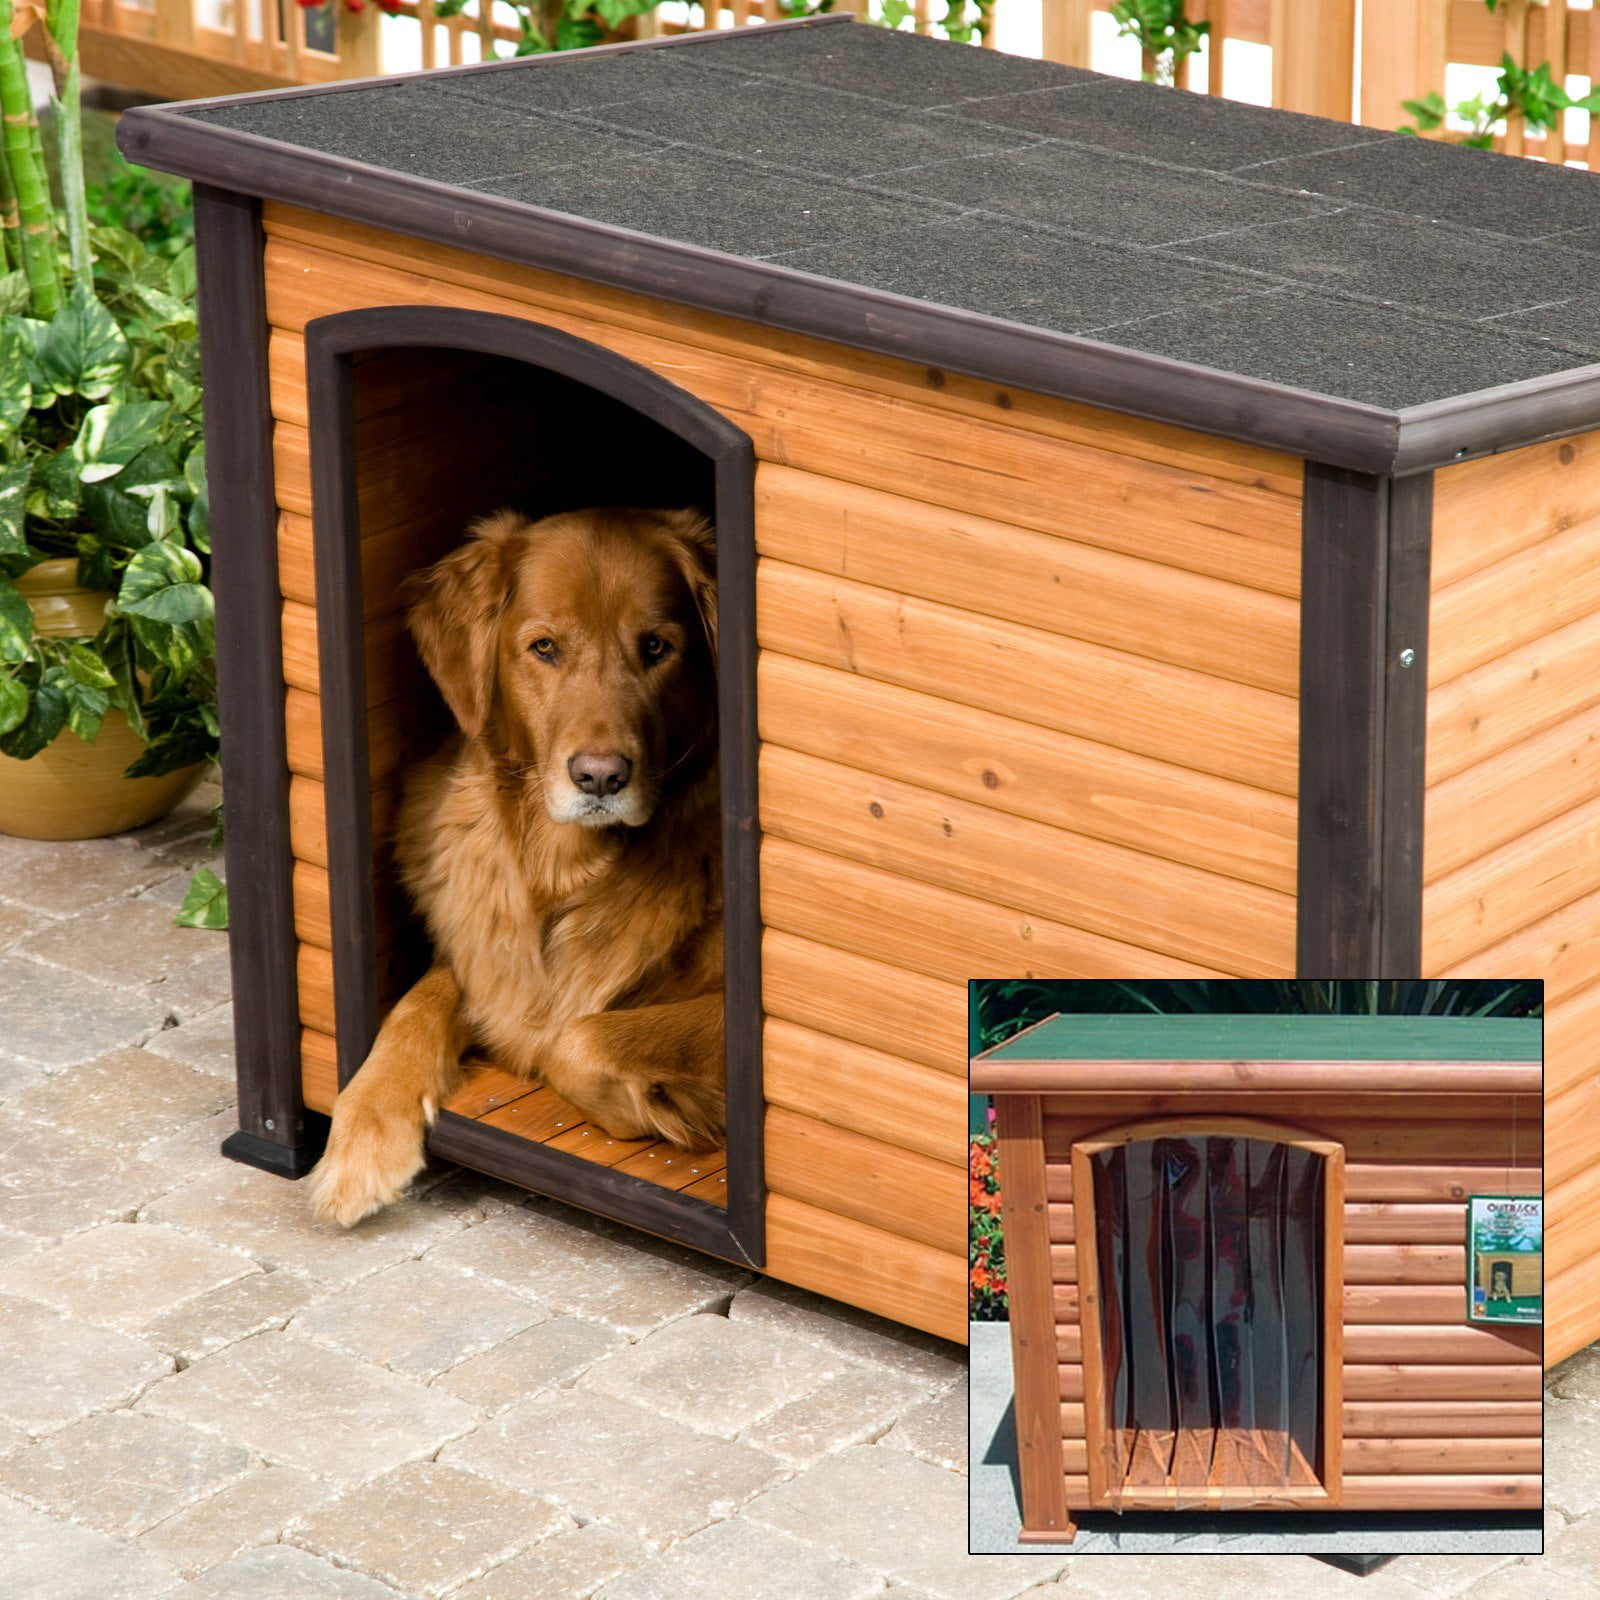 Precision Extreme Outback Log Cabin Dog House with FREE Dog Door - Walmart.com & Precision Extreme Outback Log Cabin Dog House with FREE Dog Door ...